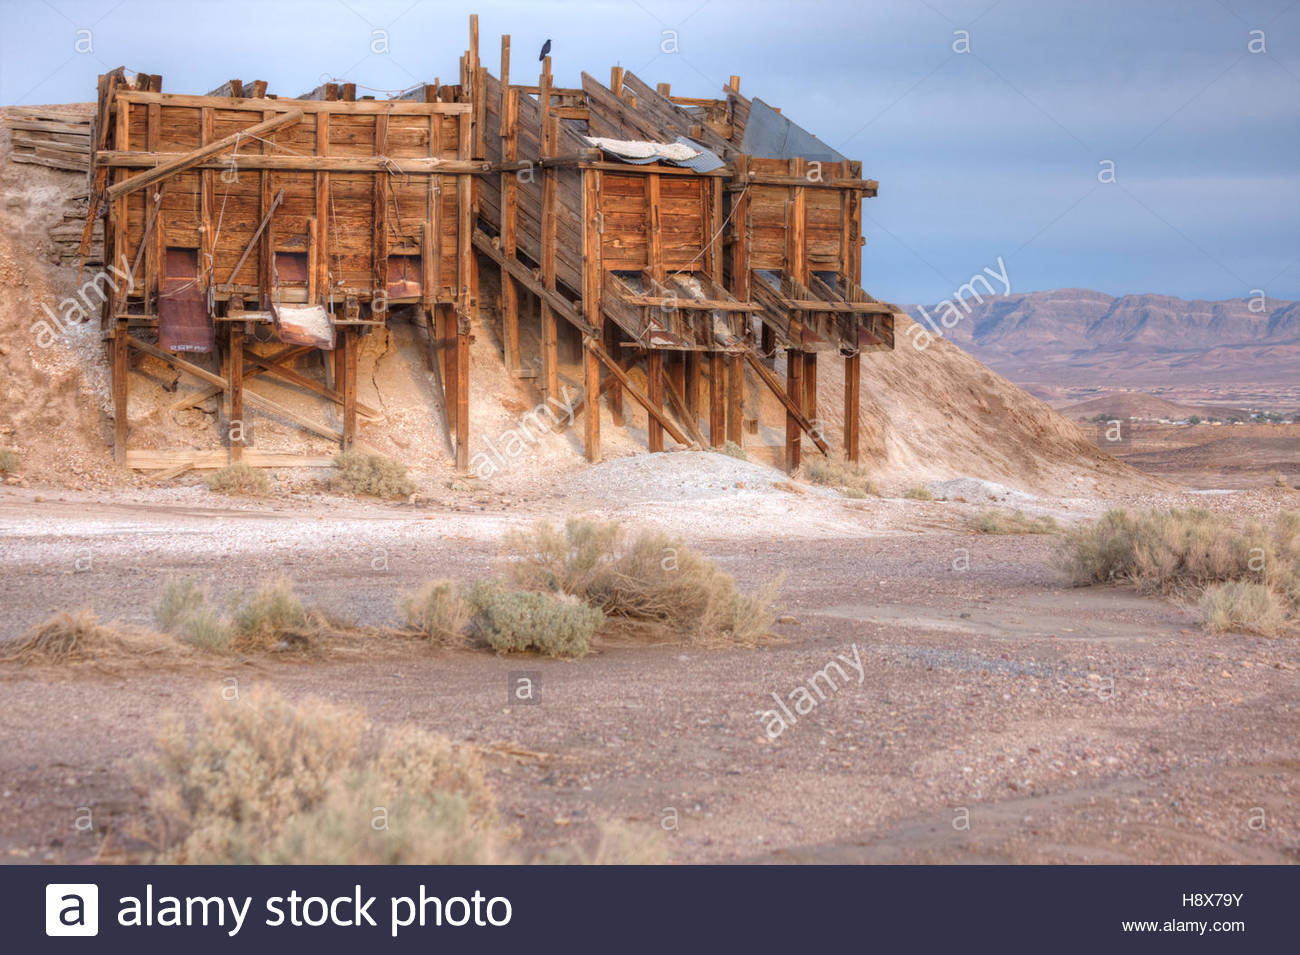 Remains of an inactive mine in the California desert. - Stock Image